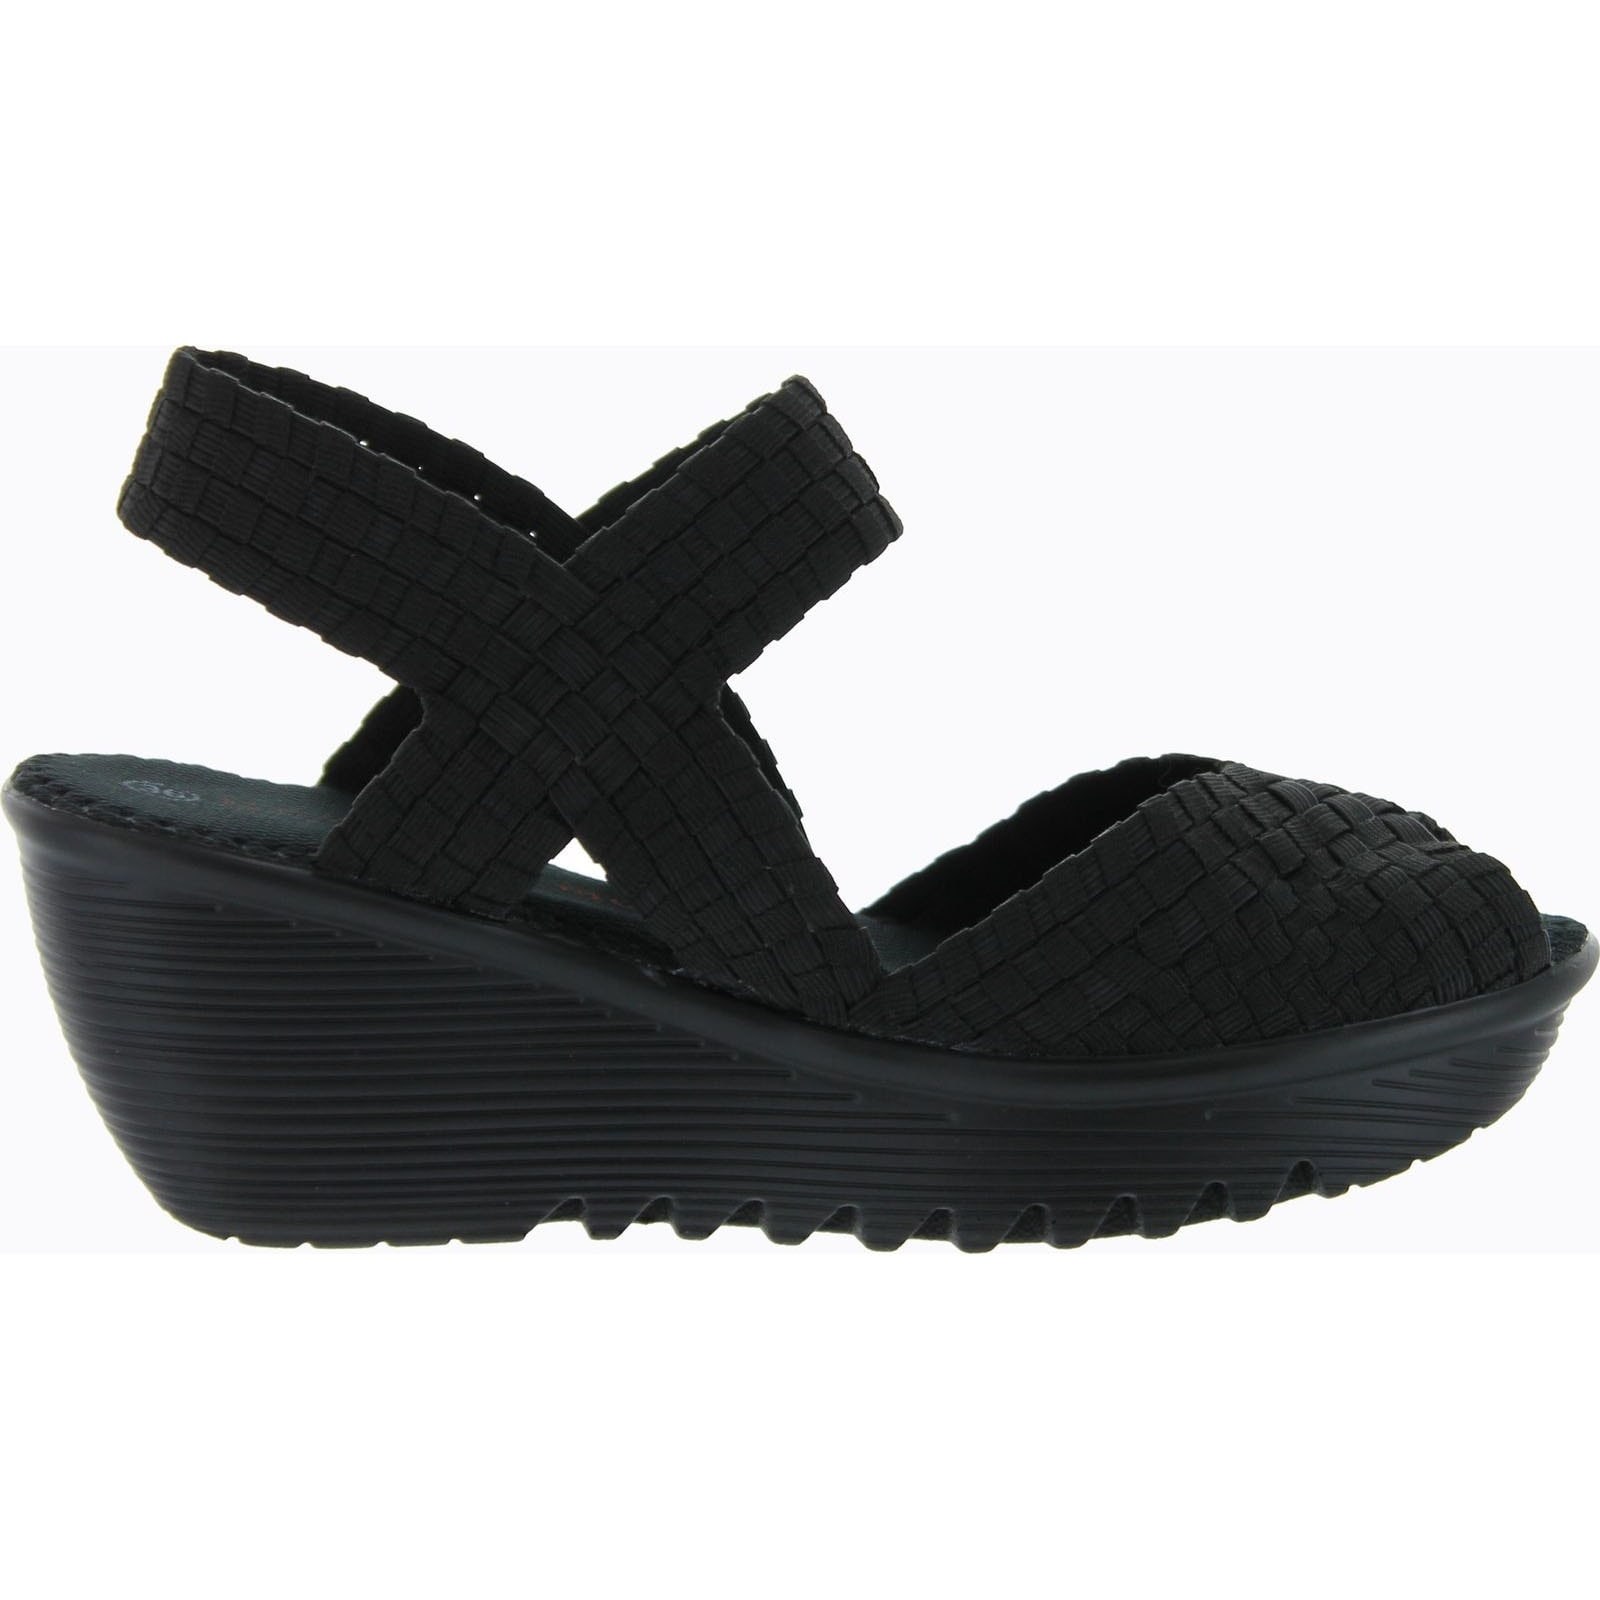 7f15cc7890be Shop Bernie Mev Womens Fame Woven Sandals - Black - Free Shipping Today -  Overstock - 14384487